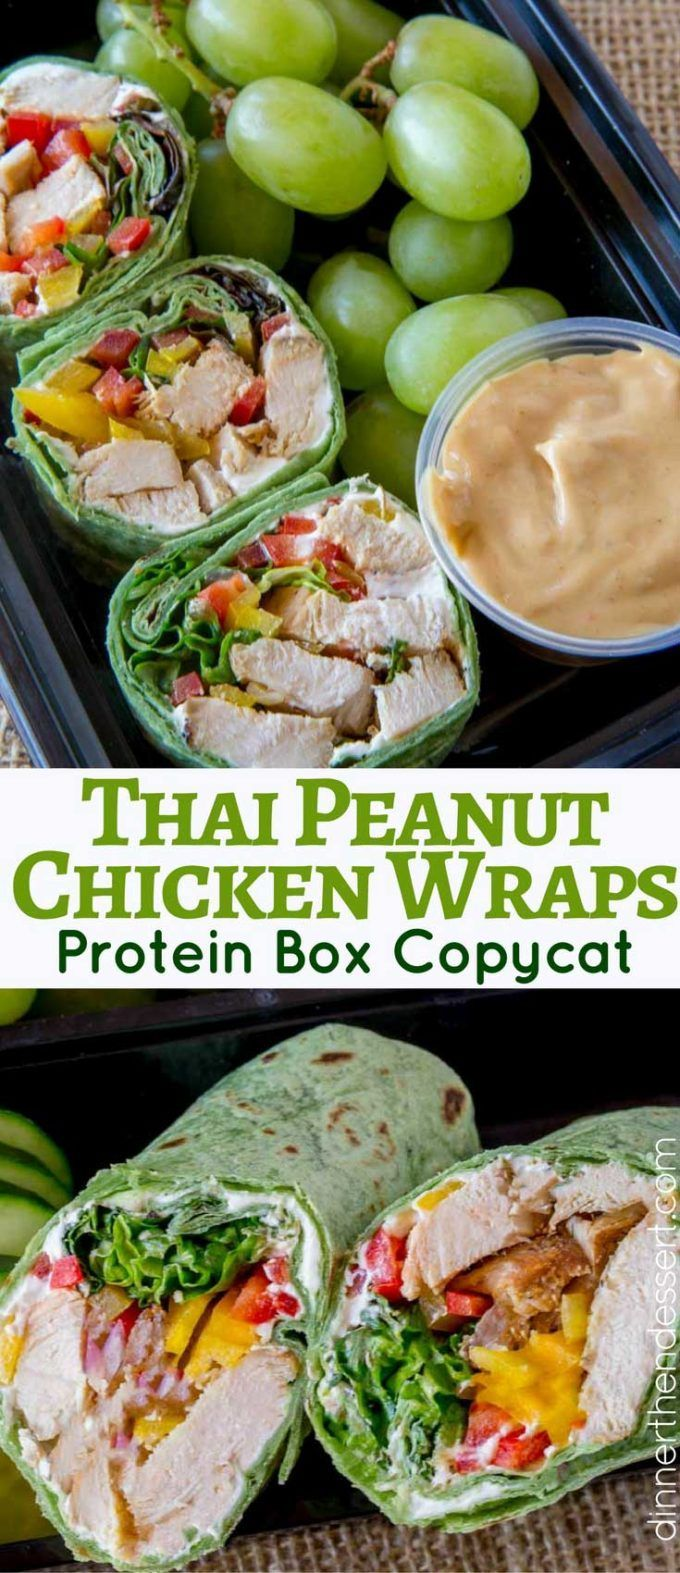 Thai Peanut Chicken Wraps with spicy peanut dipping sauce, ginger cream cheese and veggies like your favorite protein box from Starbucks.